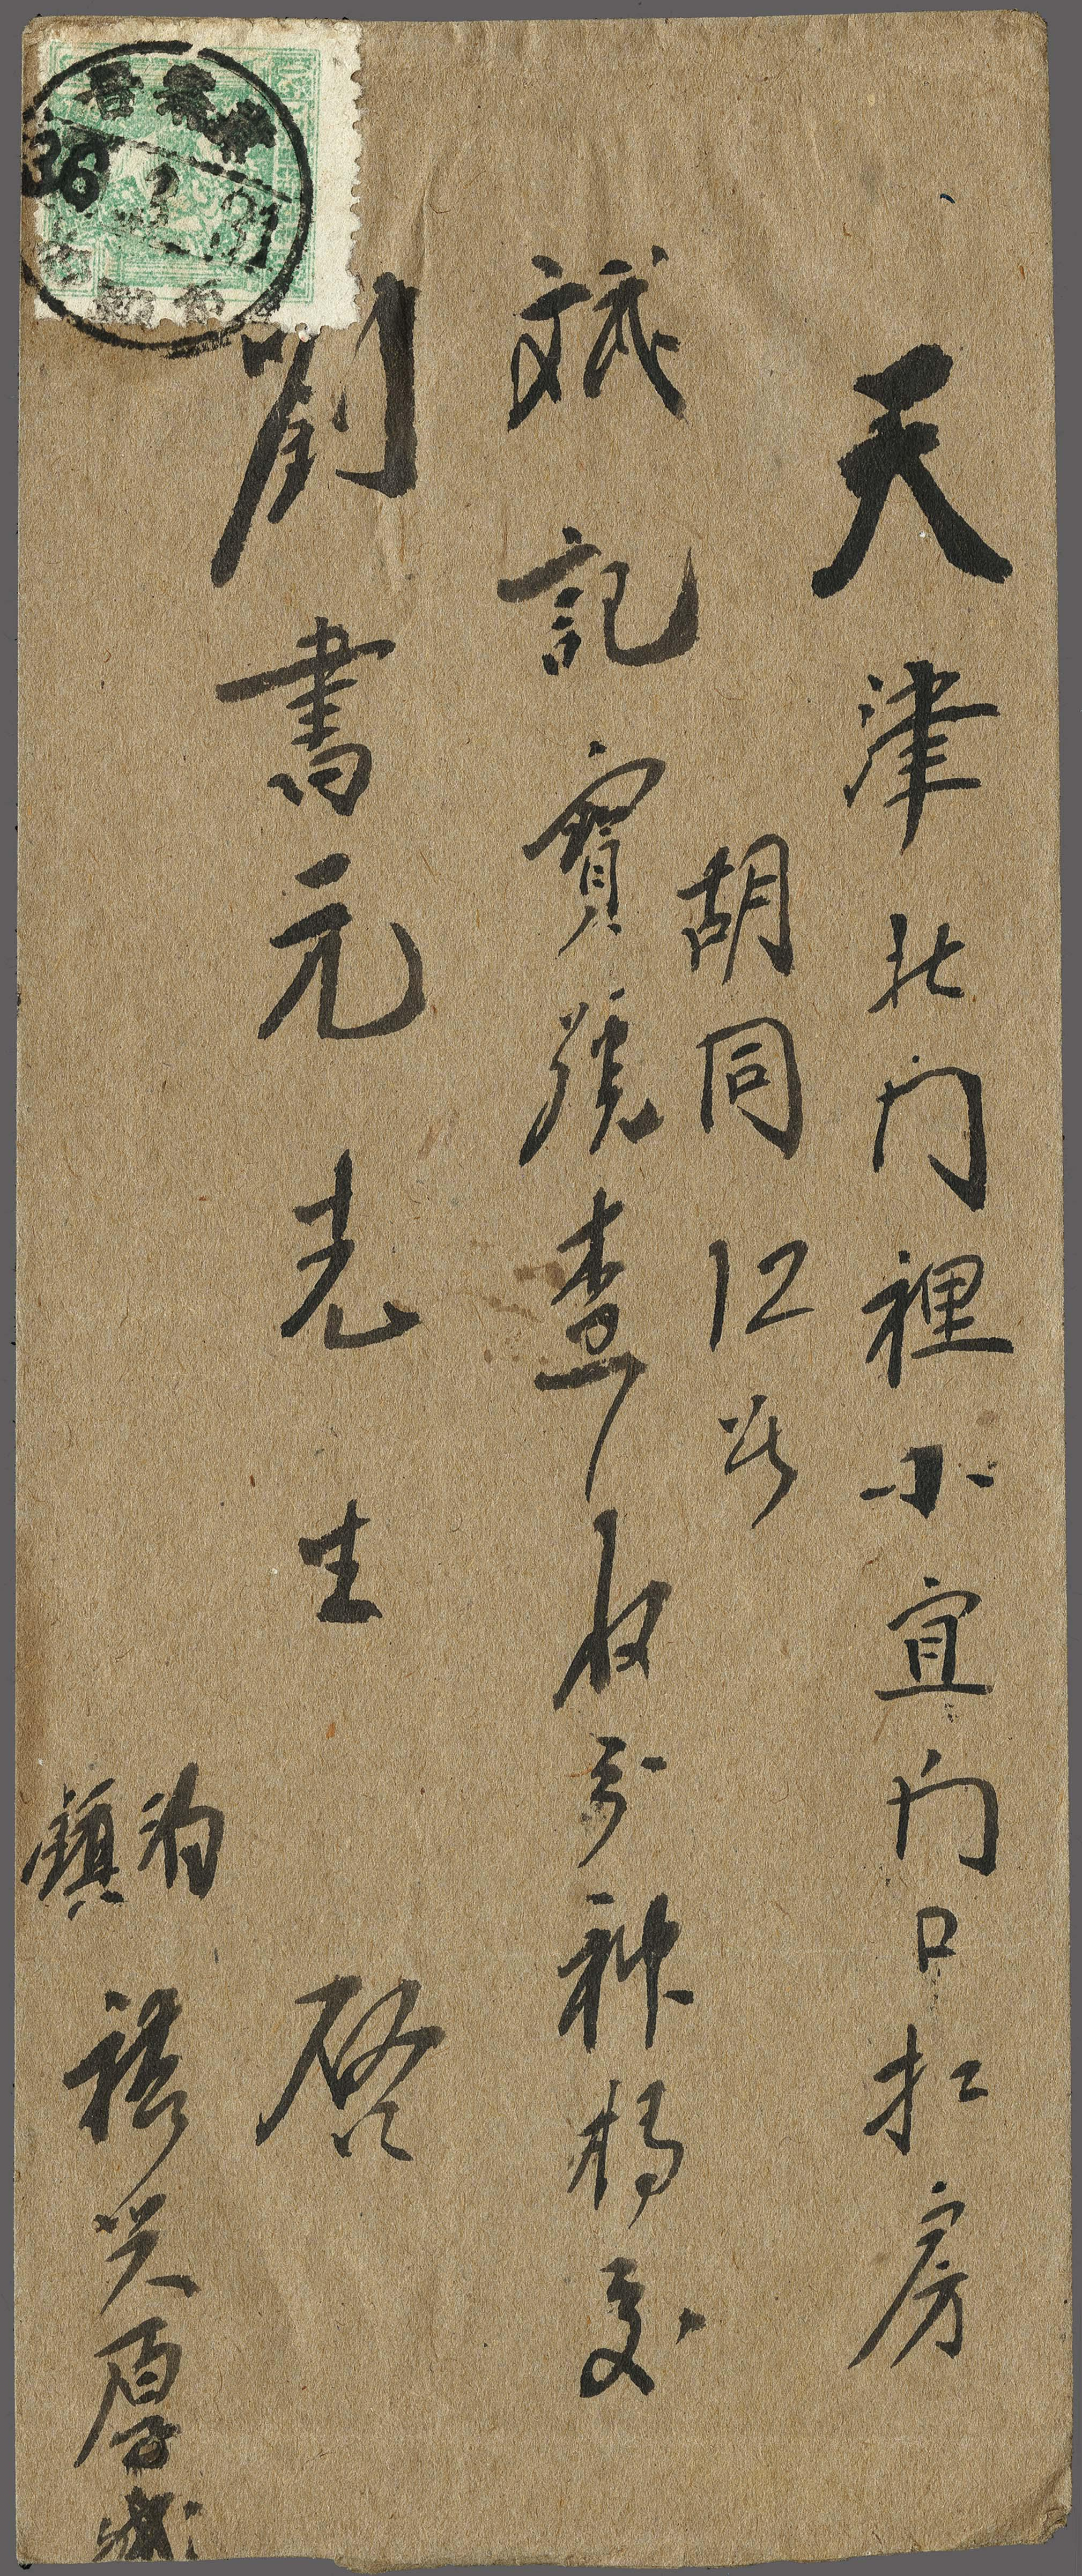 Lot 55 - China China Northern Provinces -  Corinphila Veilingen Auction 250-253 - Day 1 - Foreign countries